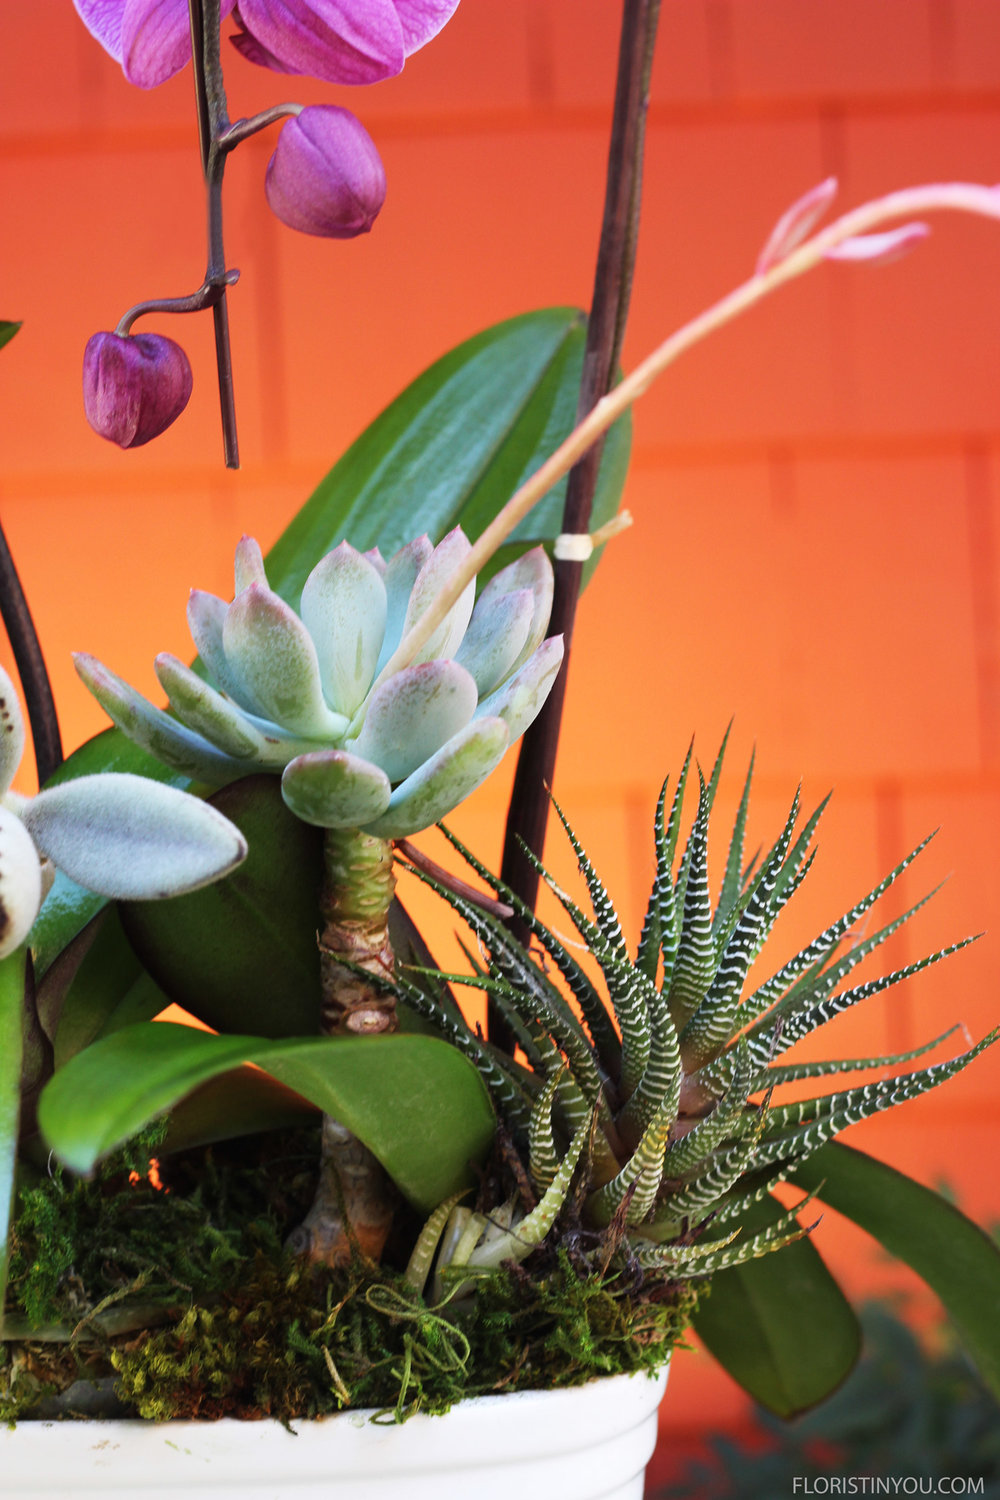 Here's a close up of the zebra plant and an echeveria.